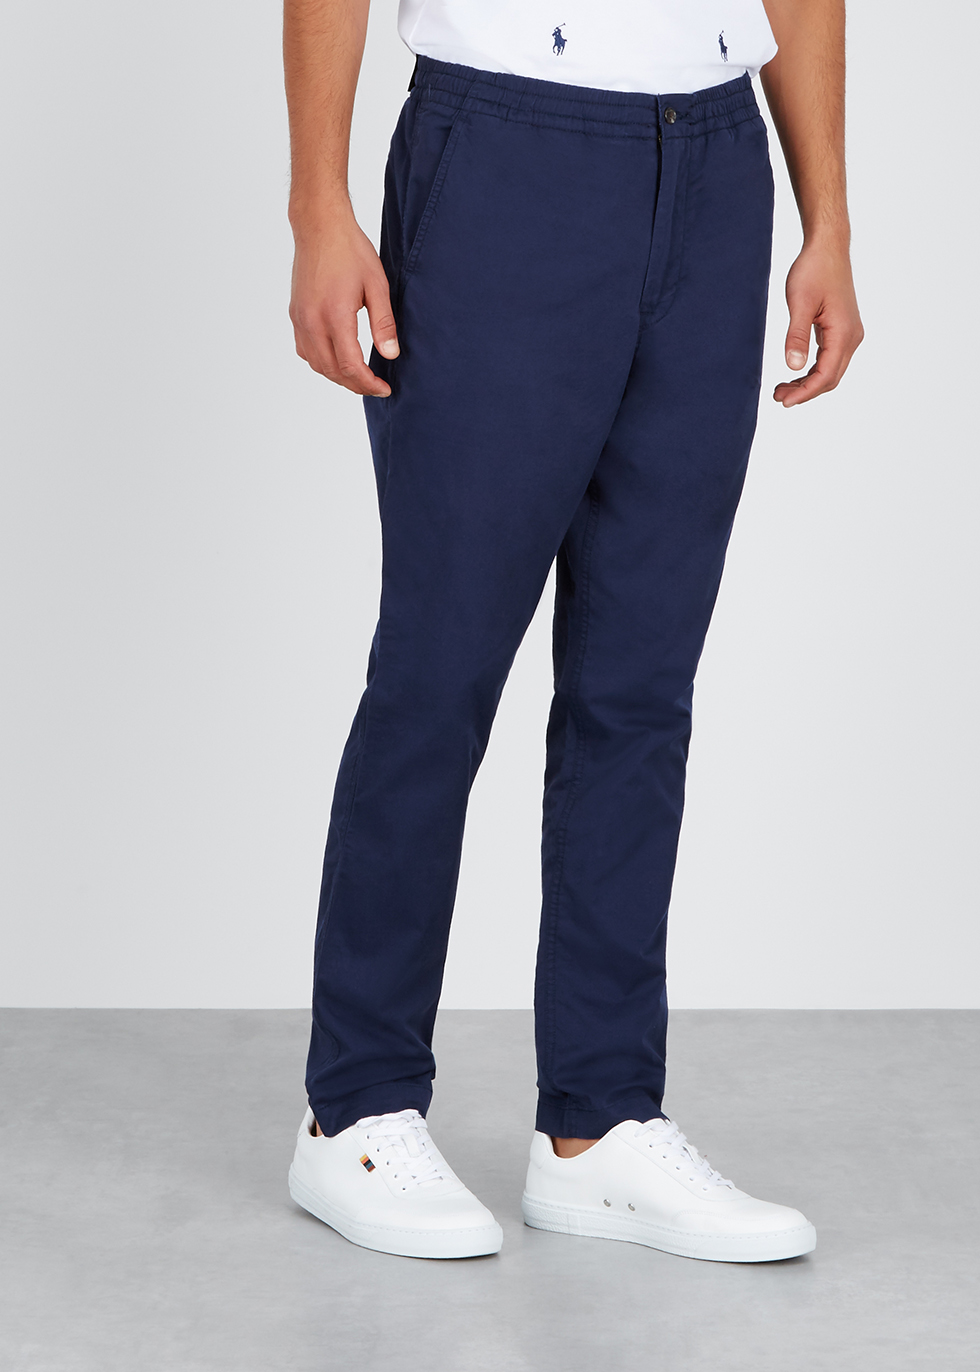 Navy cotton twill trousers - Polo Ralph Lauren